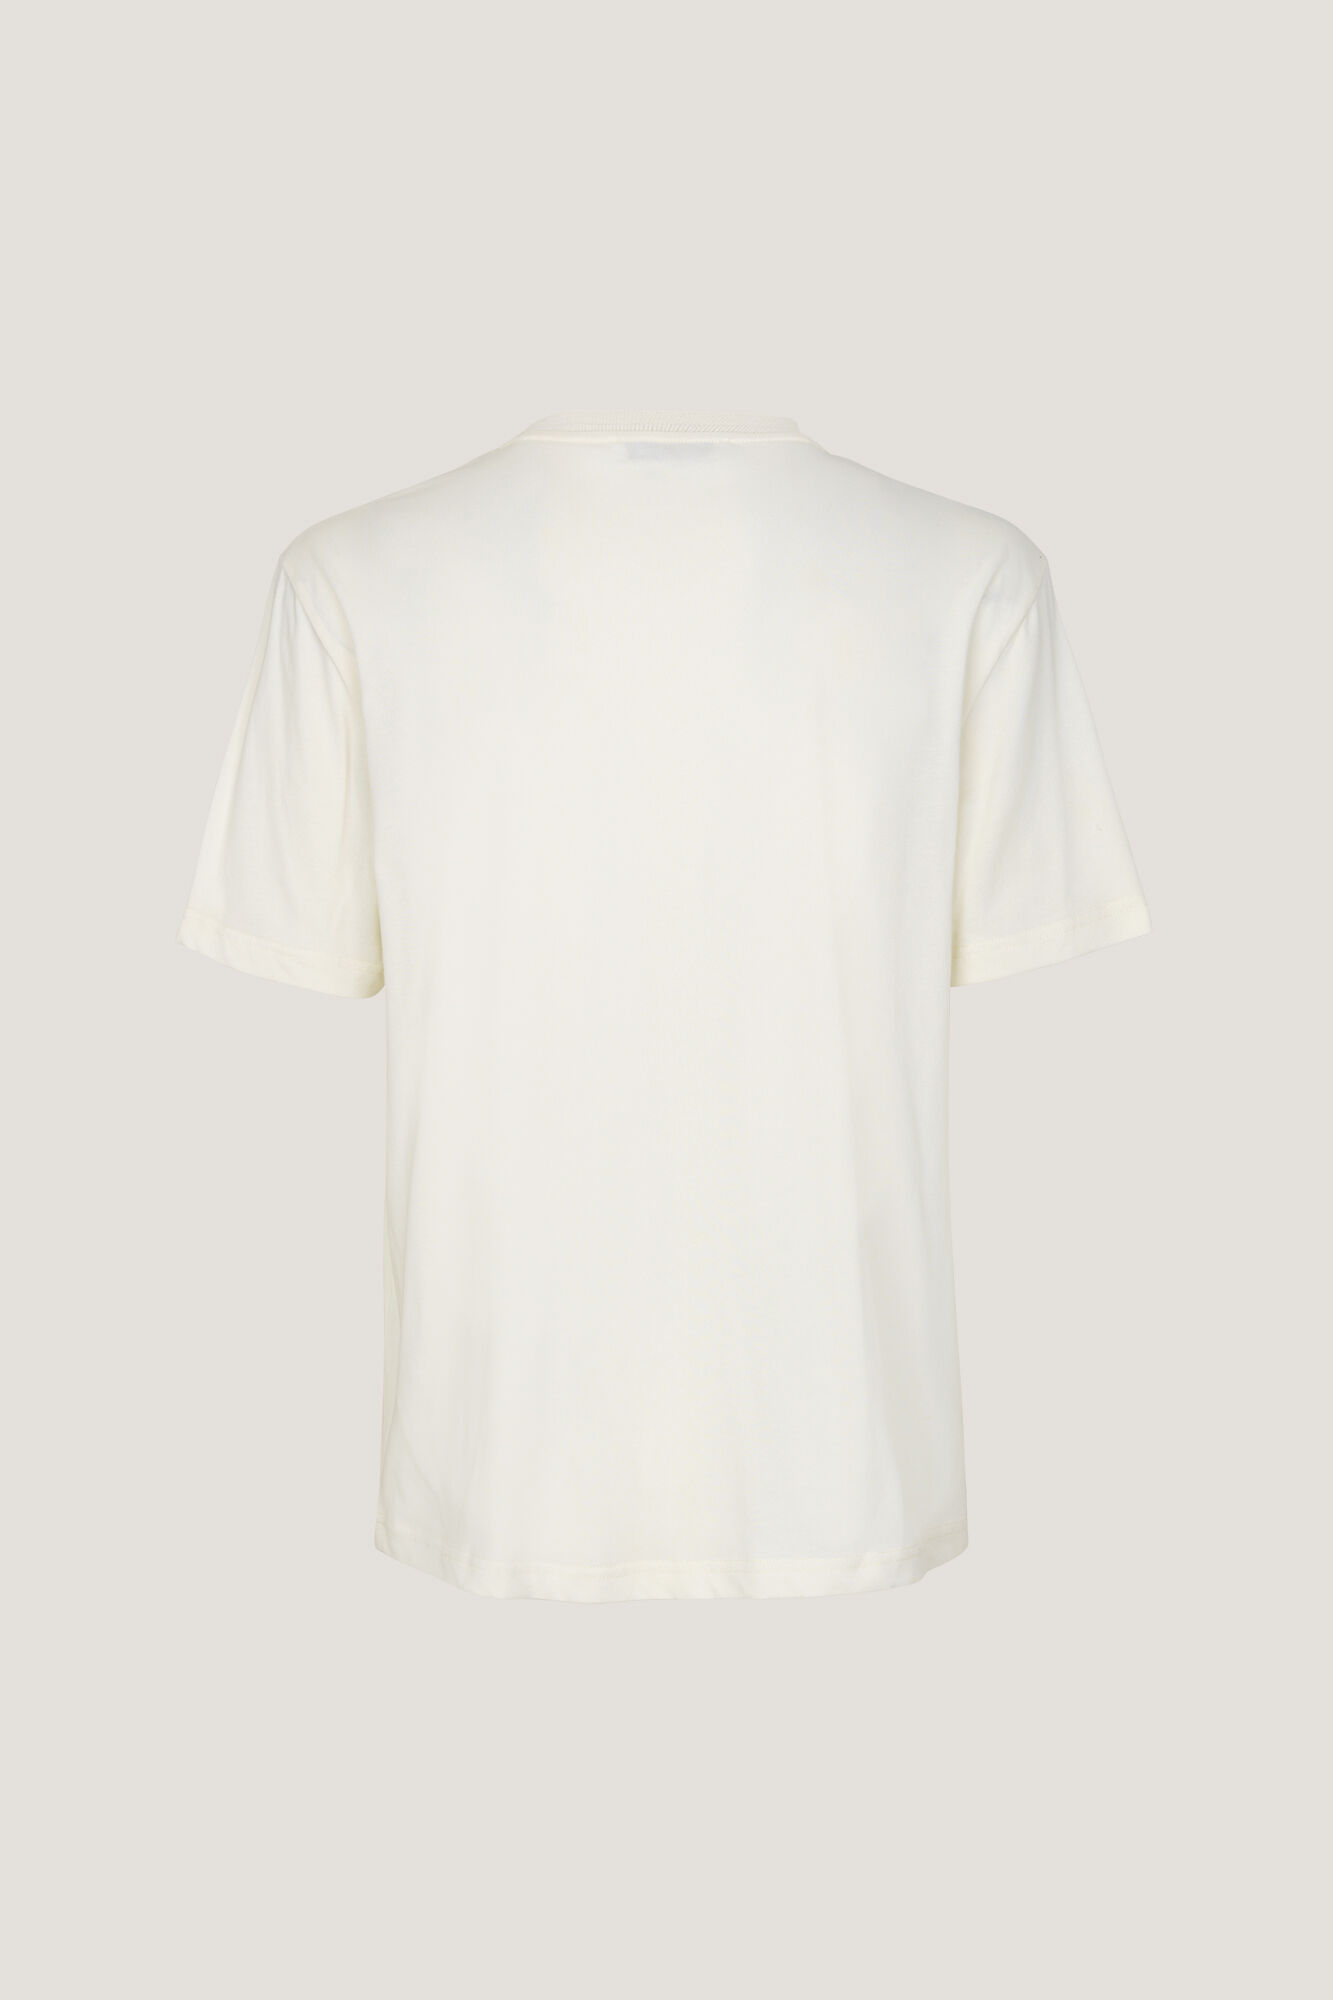 Bevtoft t-shirt 10964